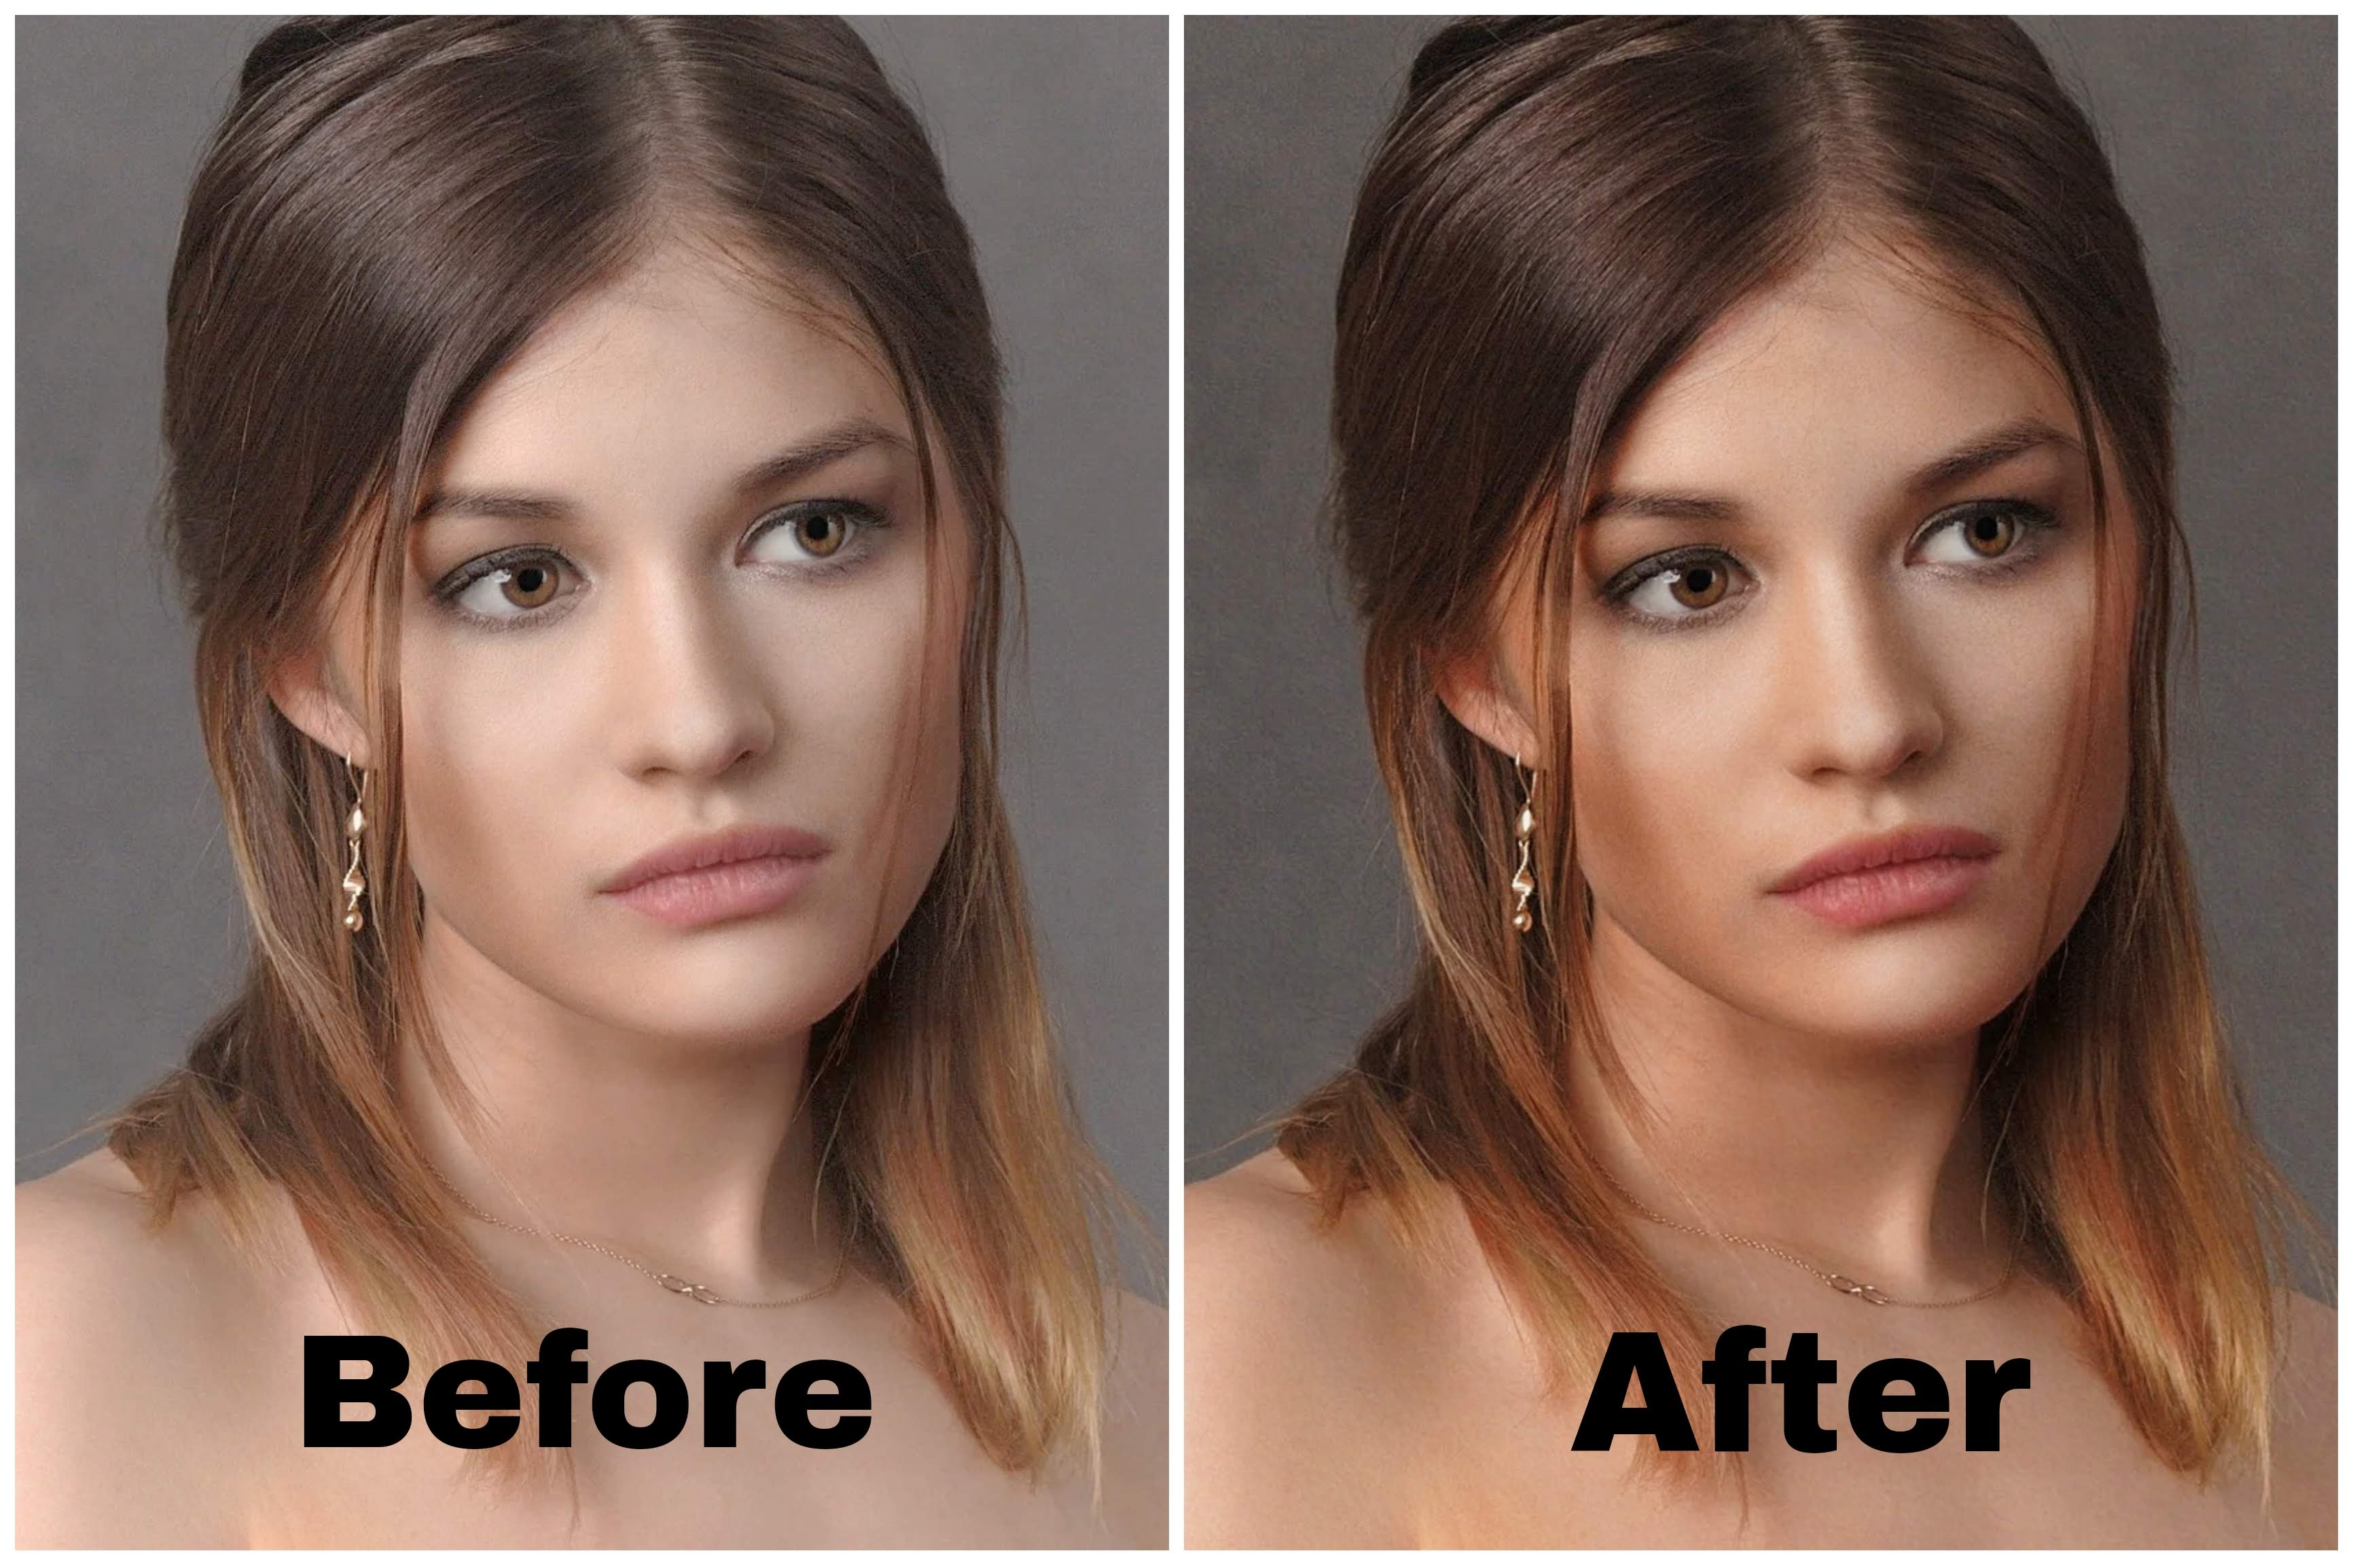 I will do photo retouching, adding filter and some simple photoshop